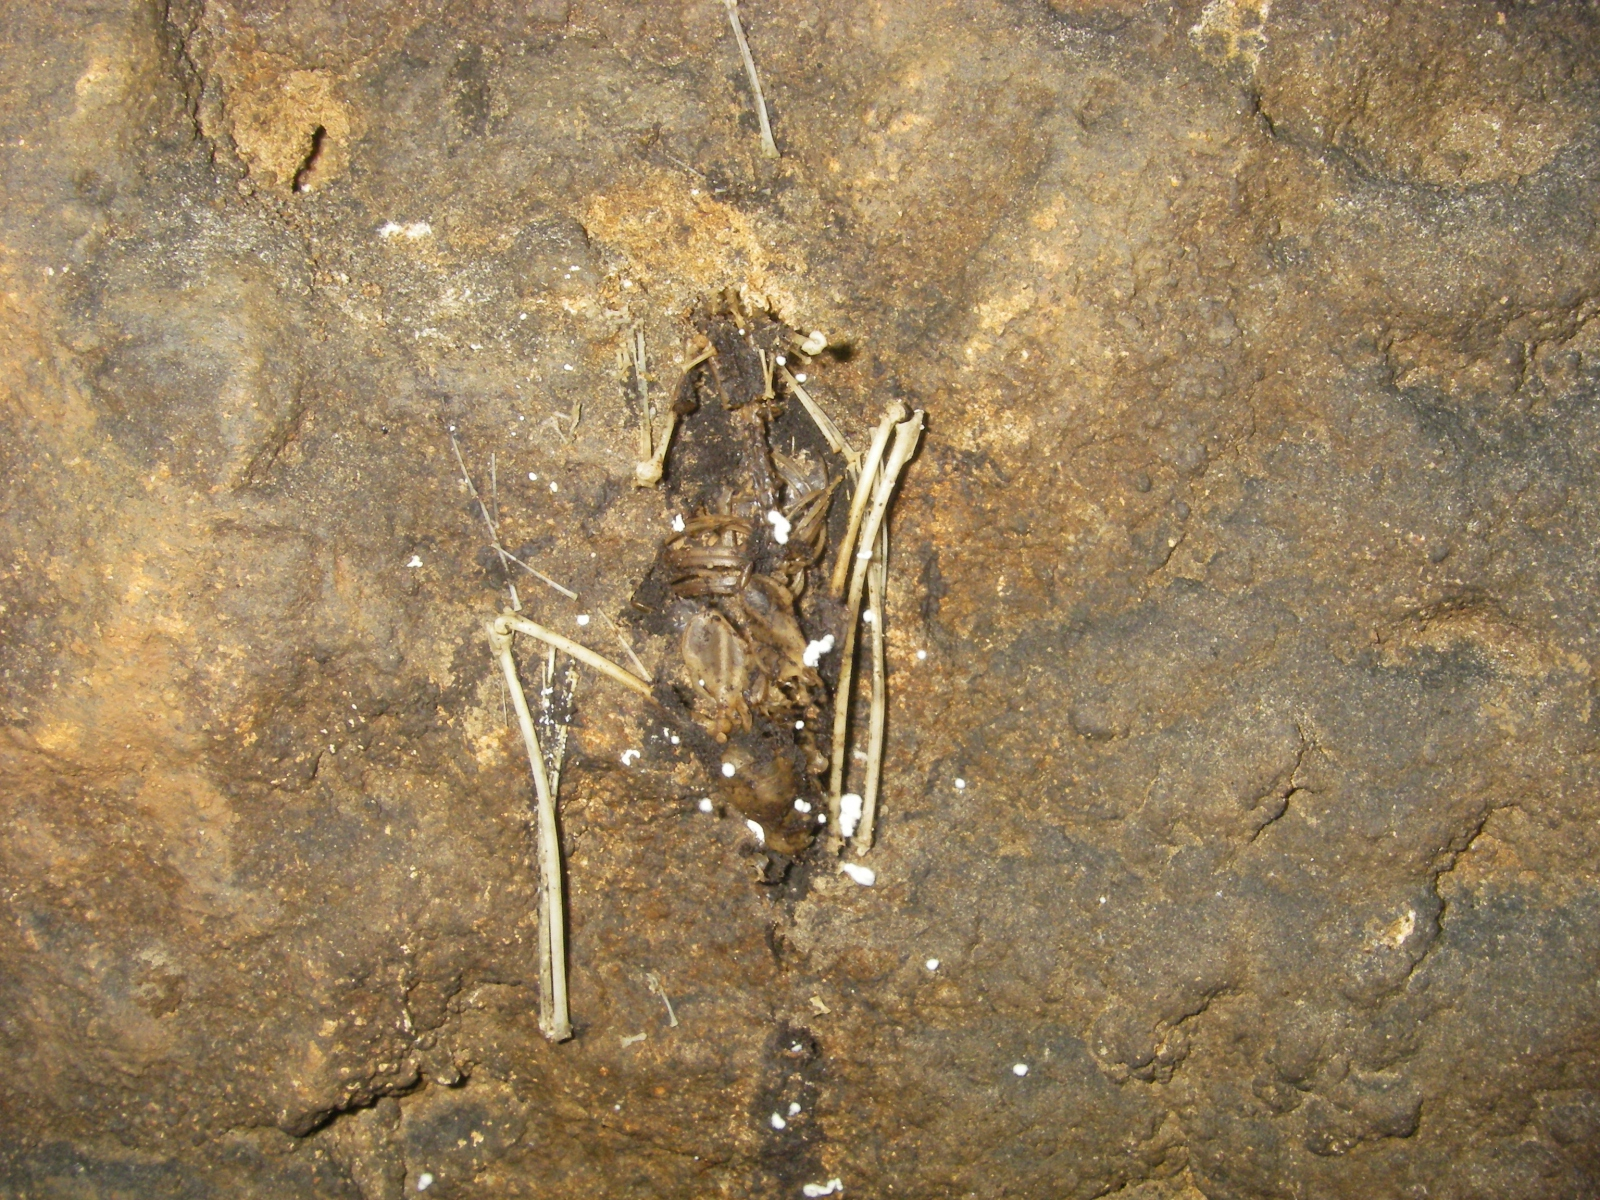 CarrollCave-BatCensus-Feb2020-21